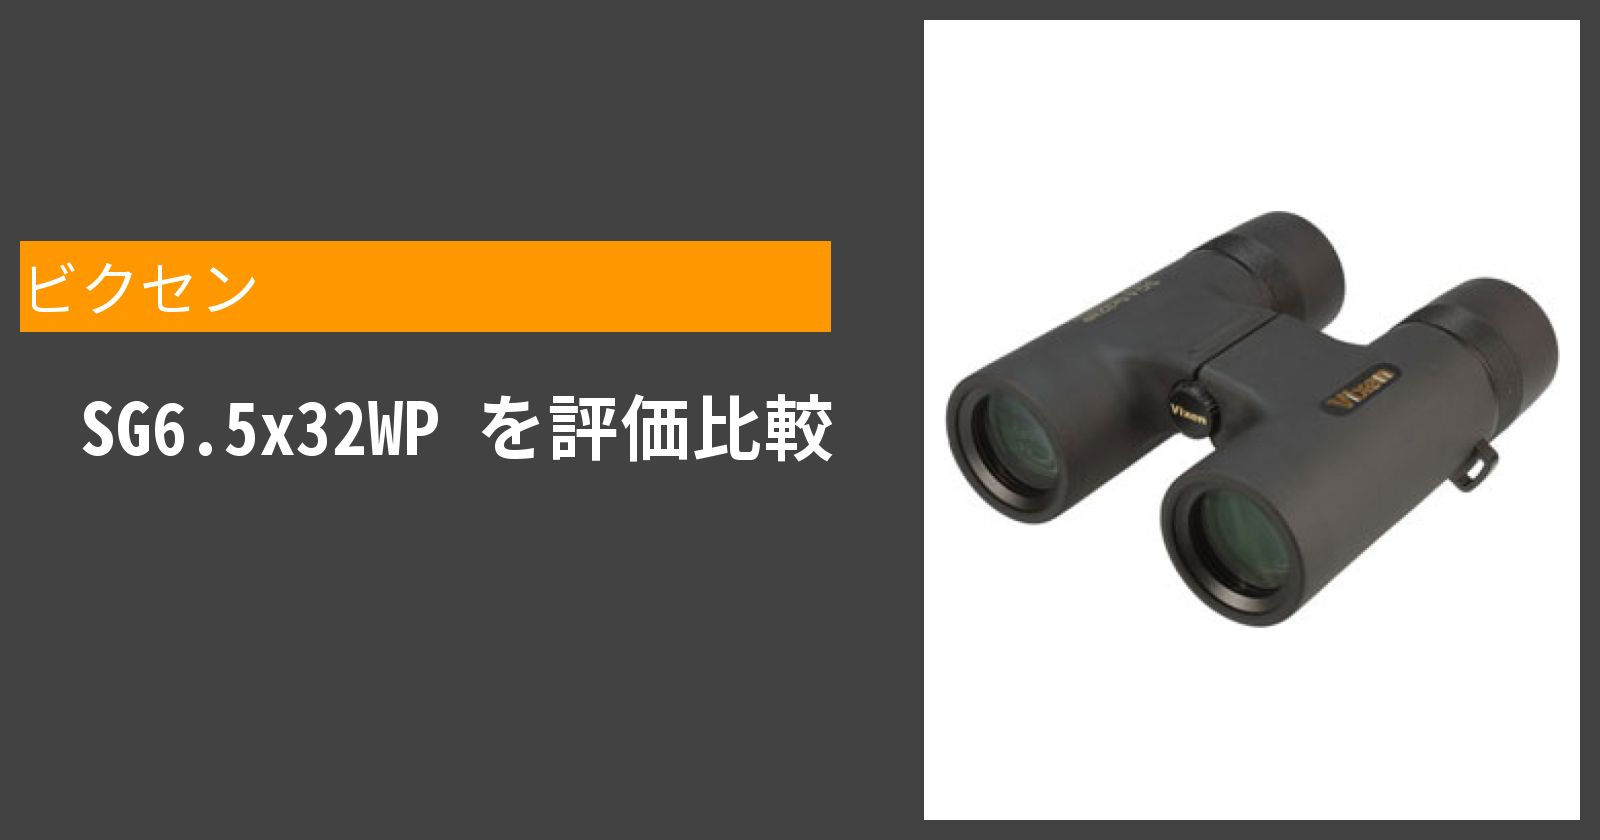 SG6.5x32WPを徹底評価